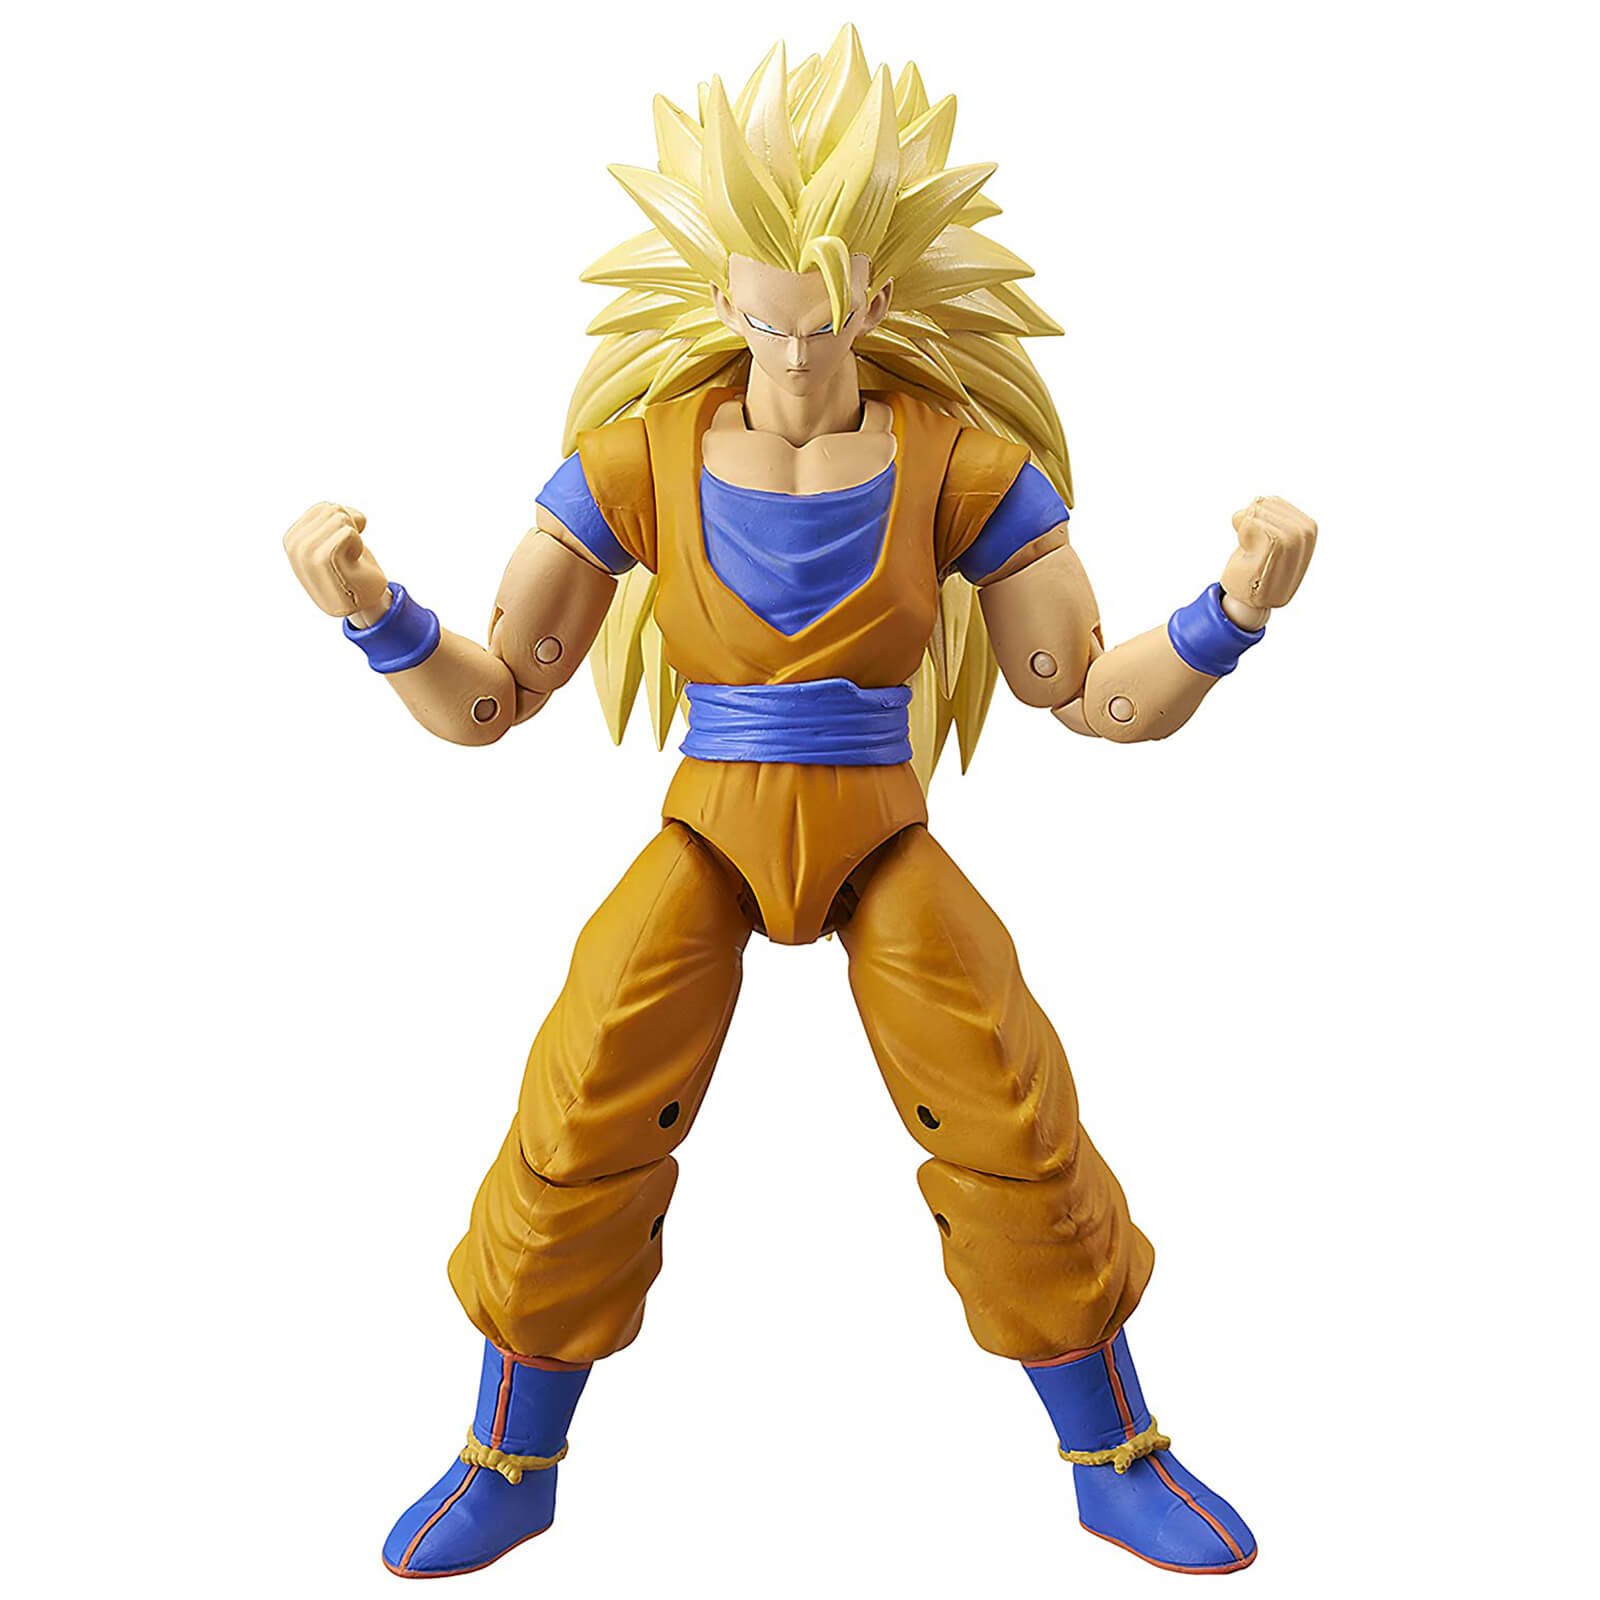 Image of Bandai Dragon Stars DBZ Super Saiyan 3 Goku Action Figure